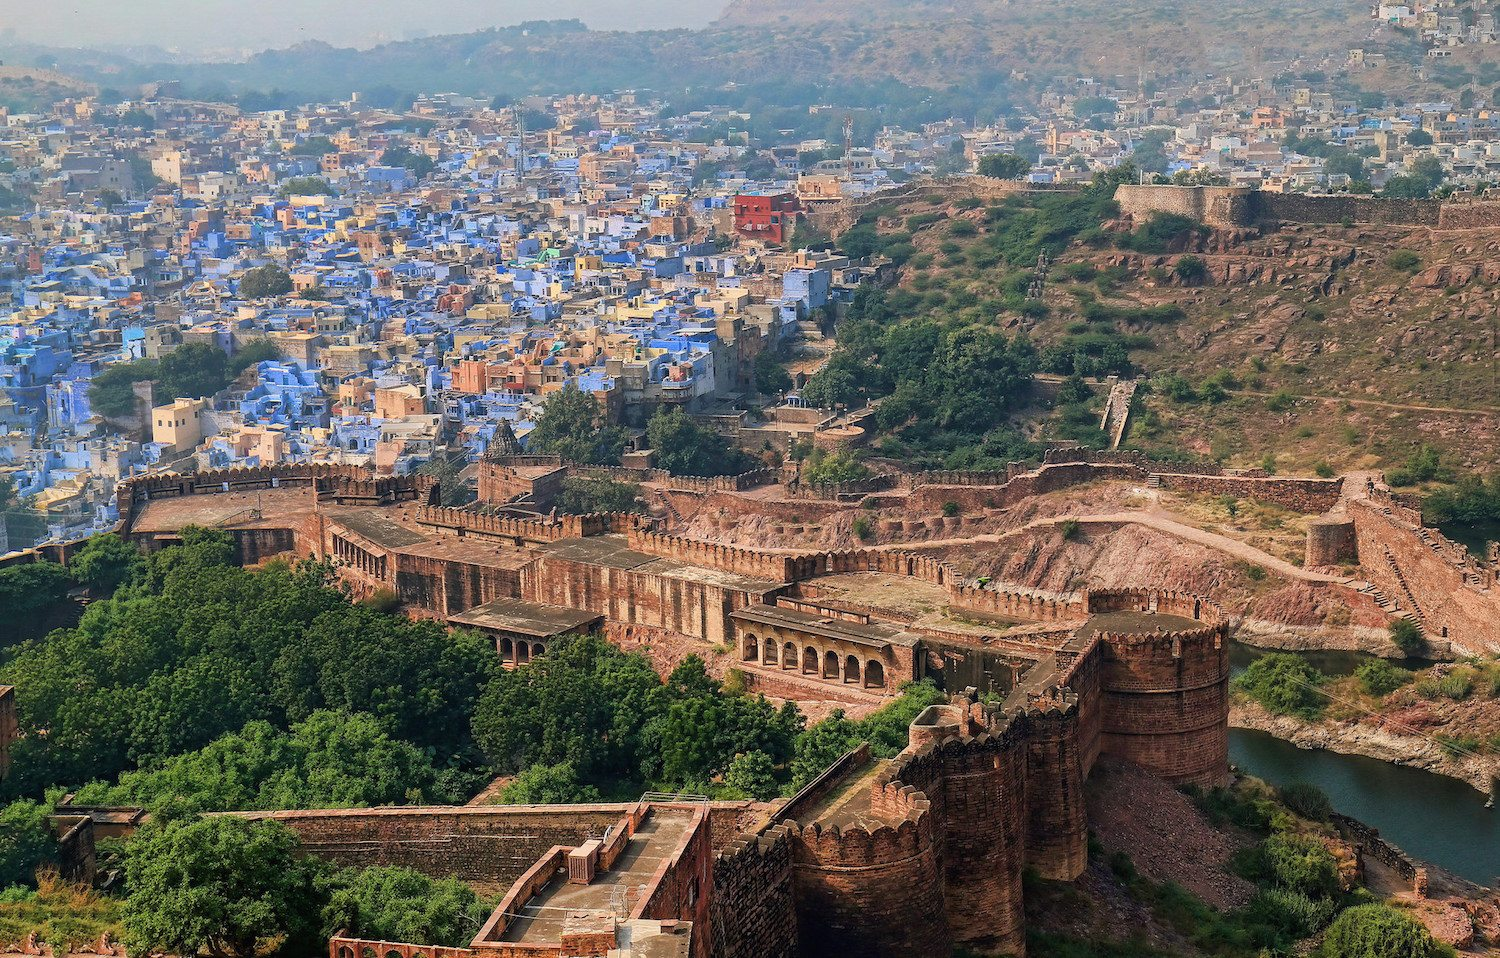 jodhpur city colored blue - desert cities in rajasthan